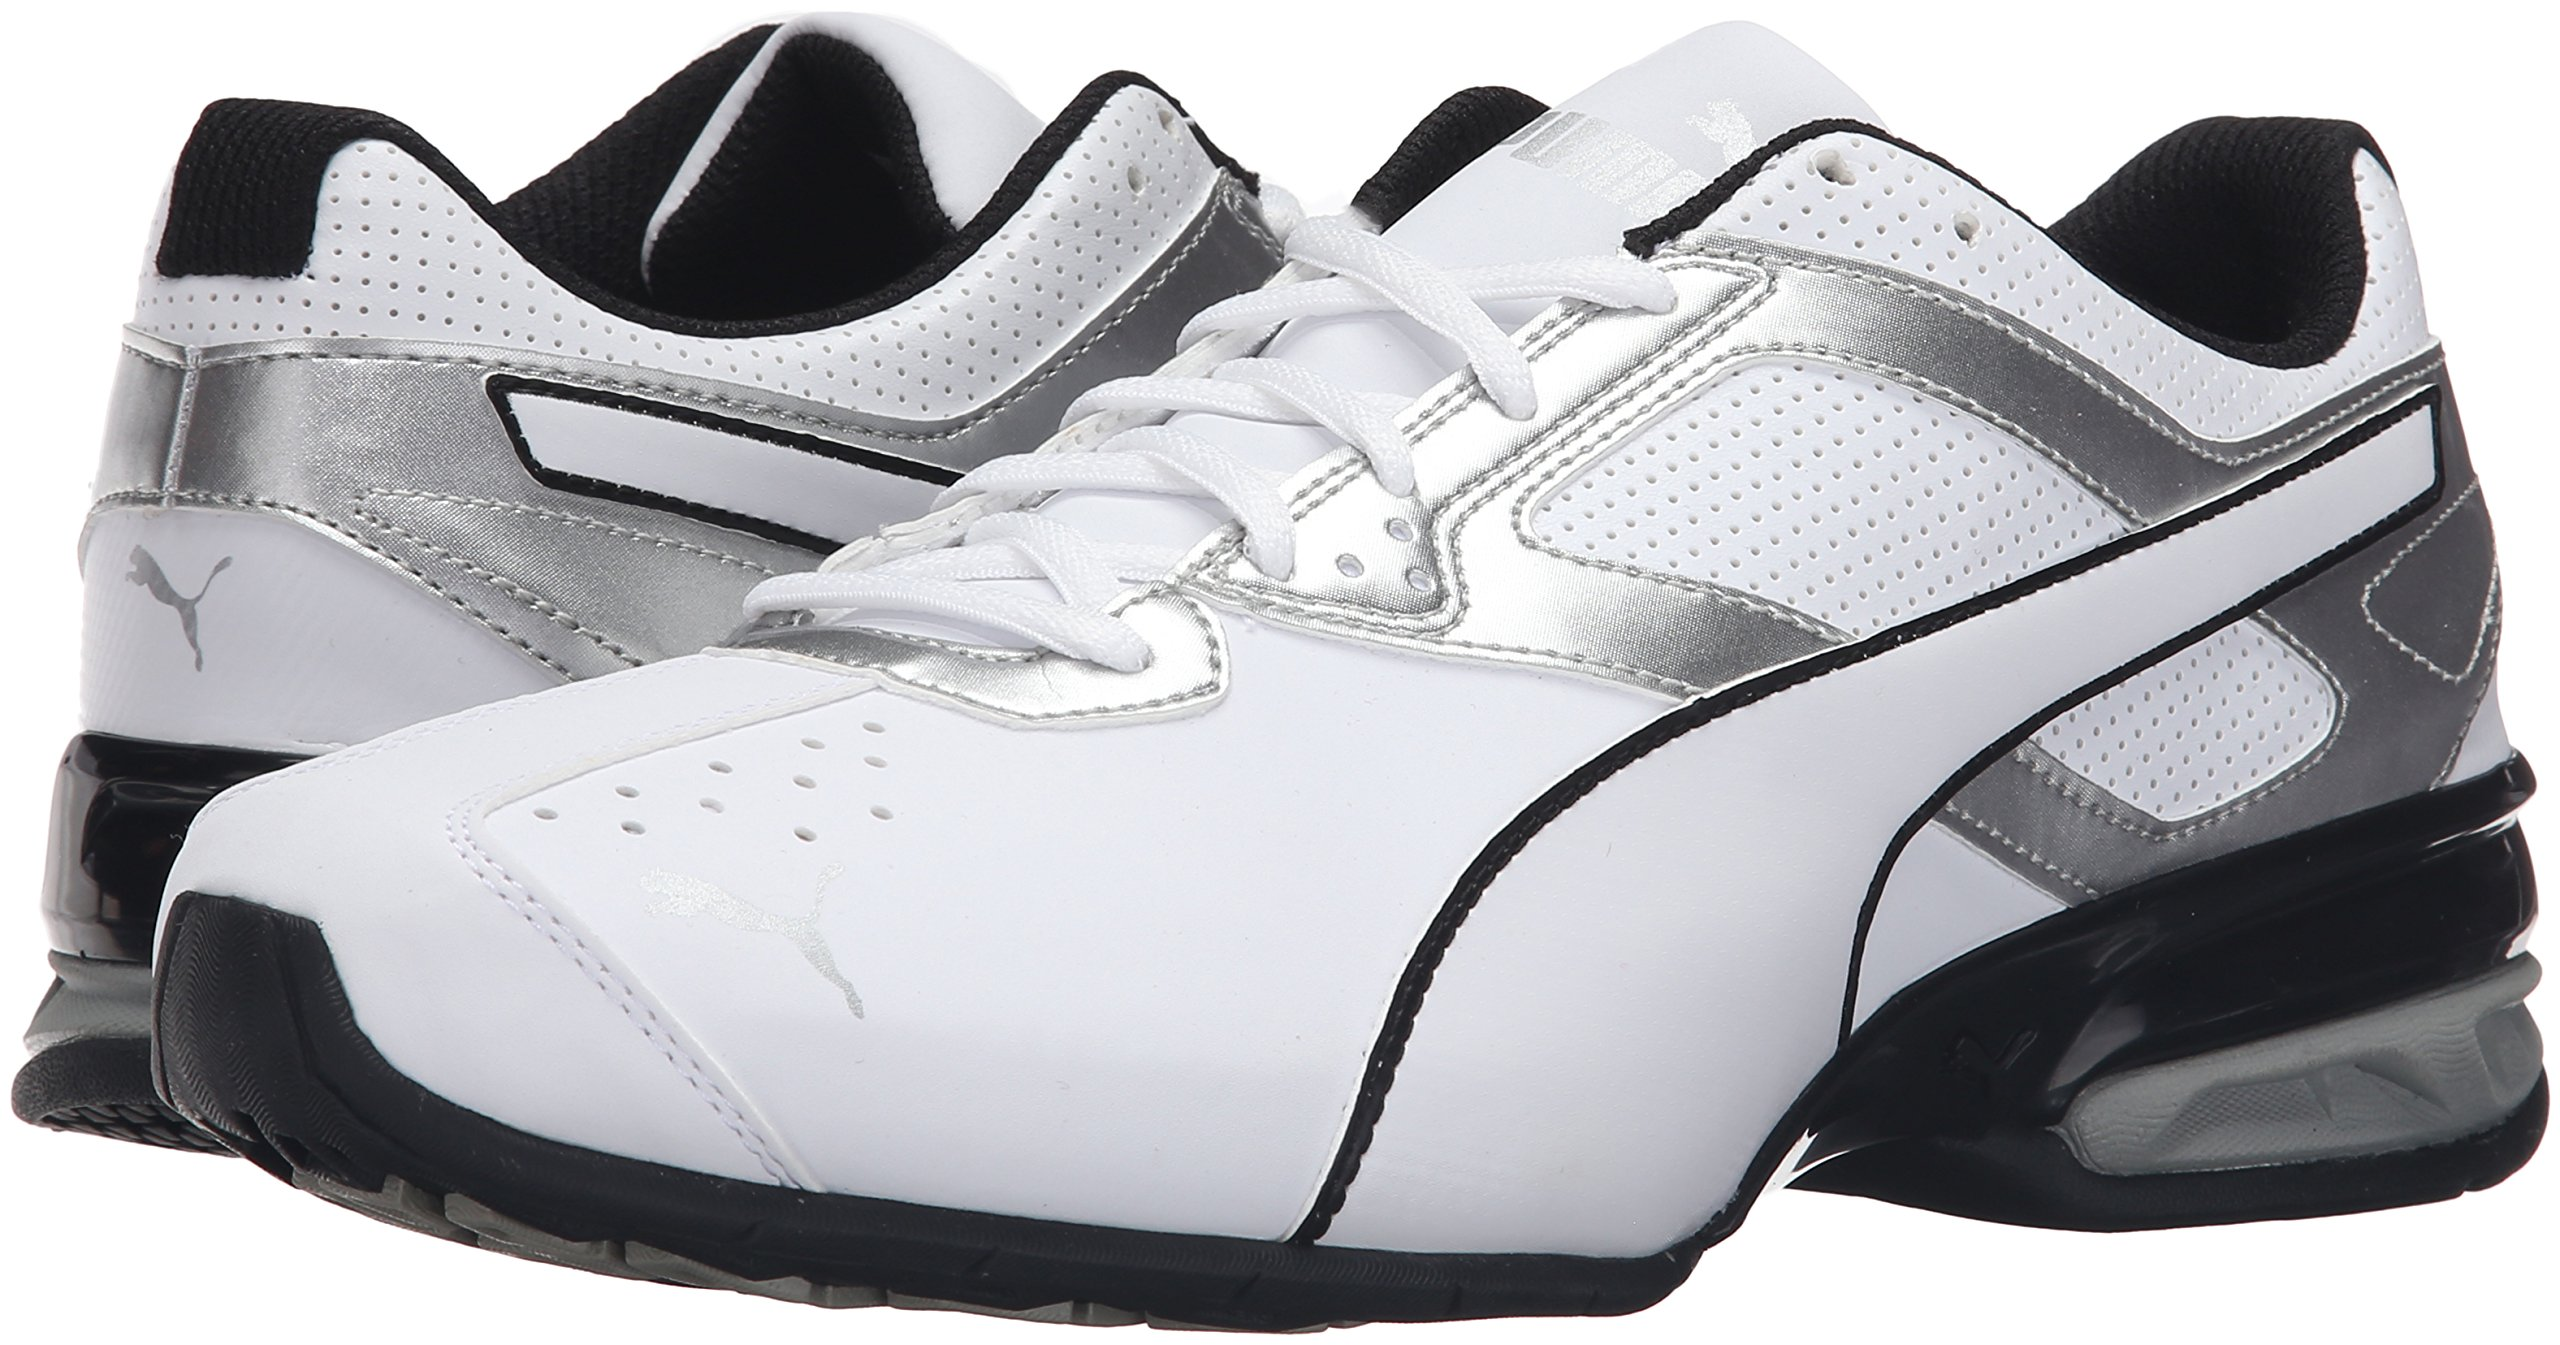 98c52f9c335 PUMA Men s Tazon 6 FM Puma White  Puma Silver Running Shoe - 10.5 D(M) US -  18987301-100   Road Running   Clothing